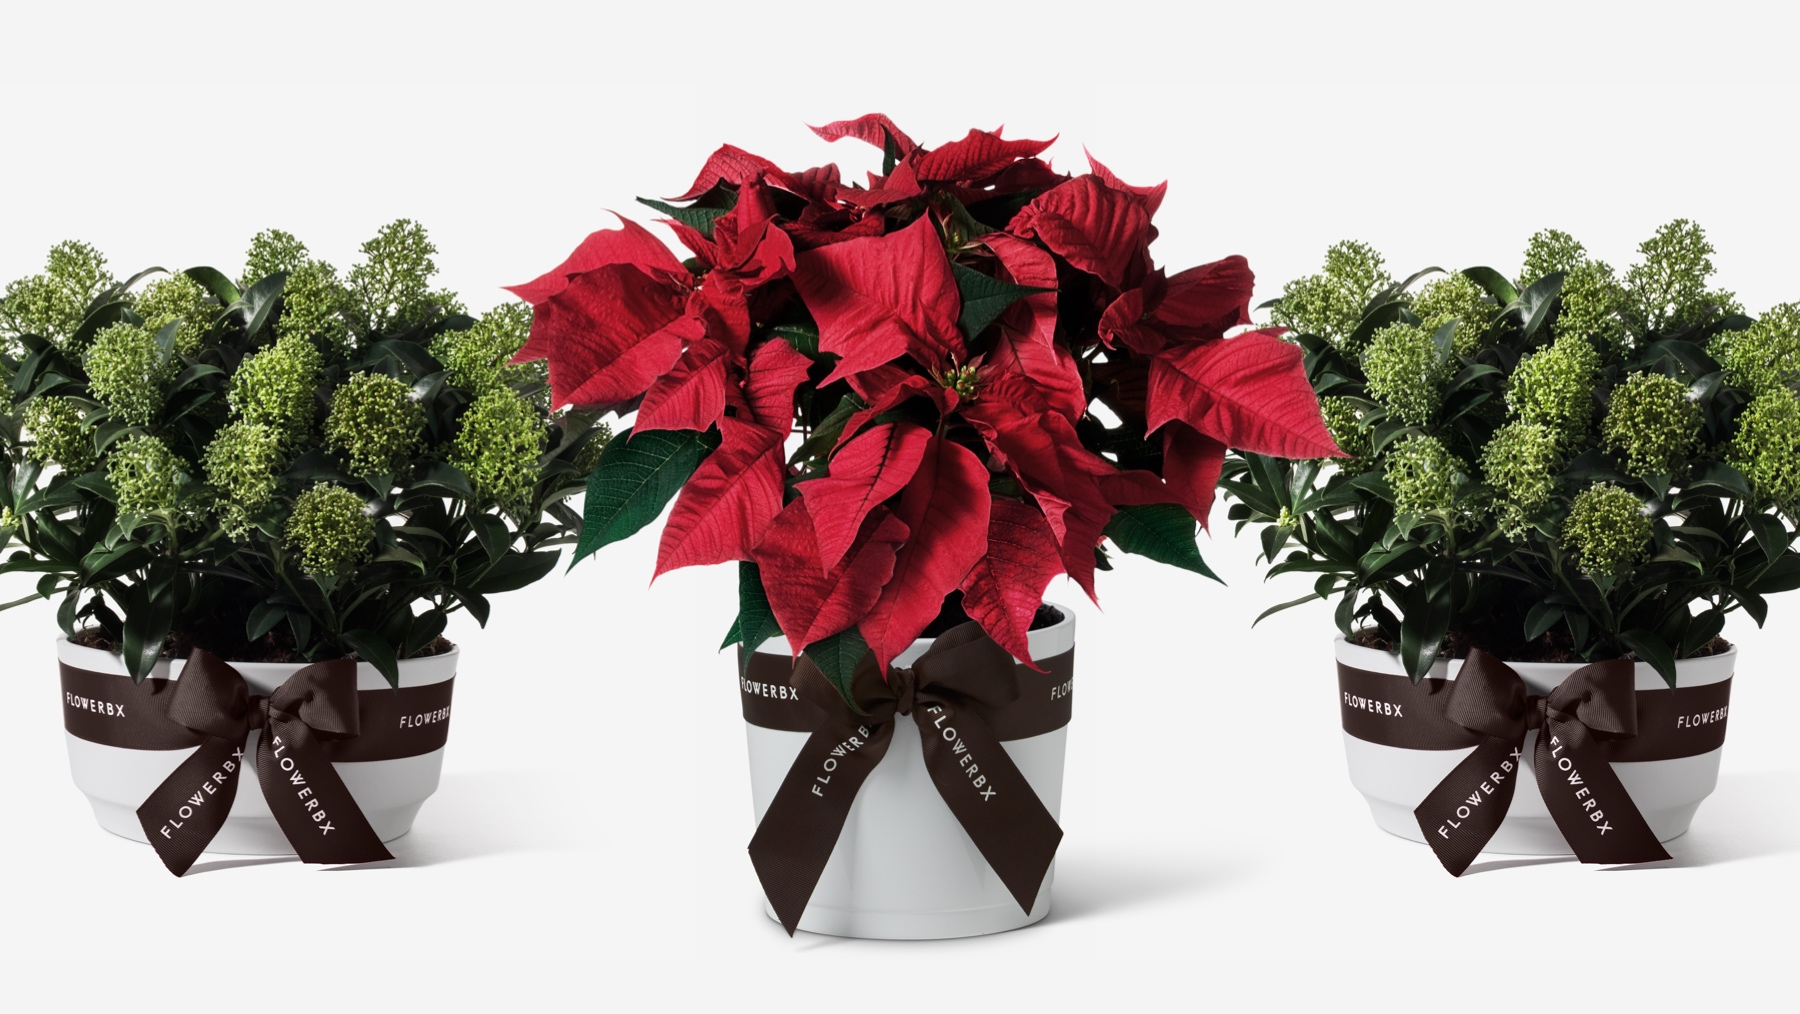 Red Flower Poinsettias and Christmas Plants